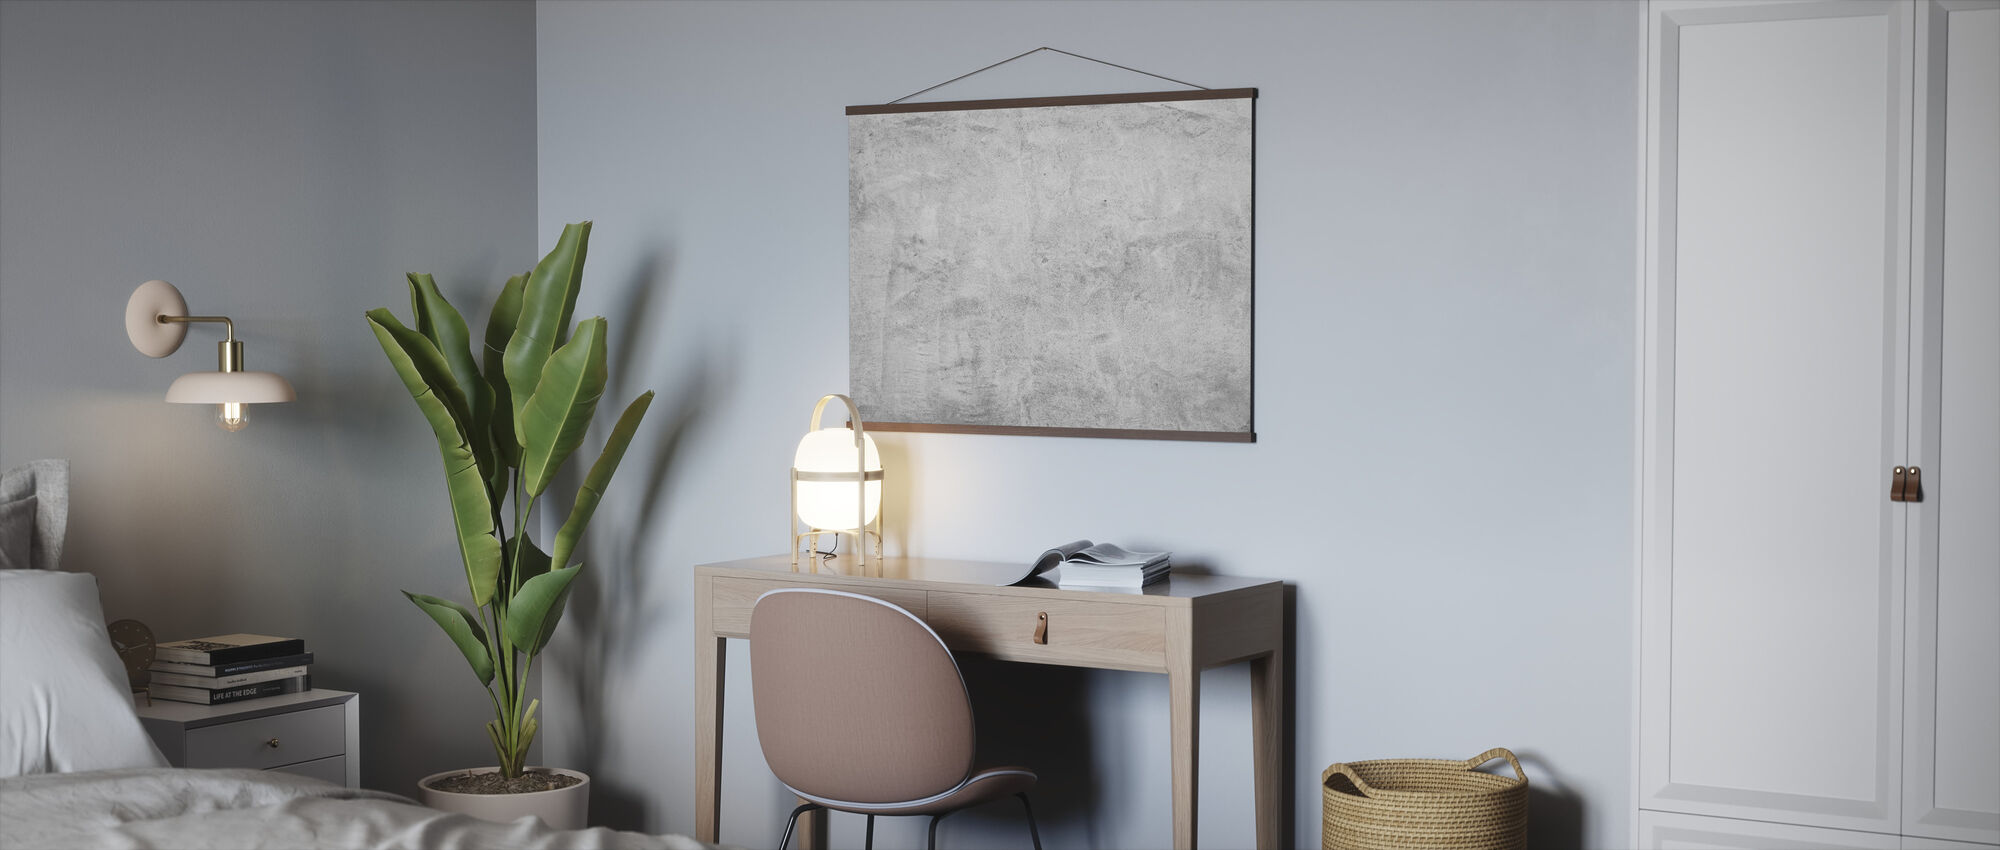 Scrubbed Concrete Wall - Poster - Office